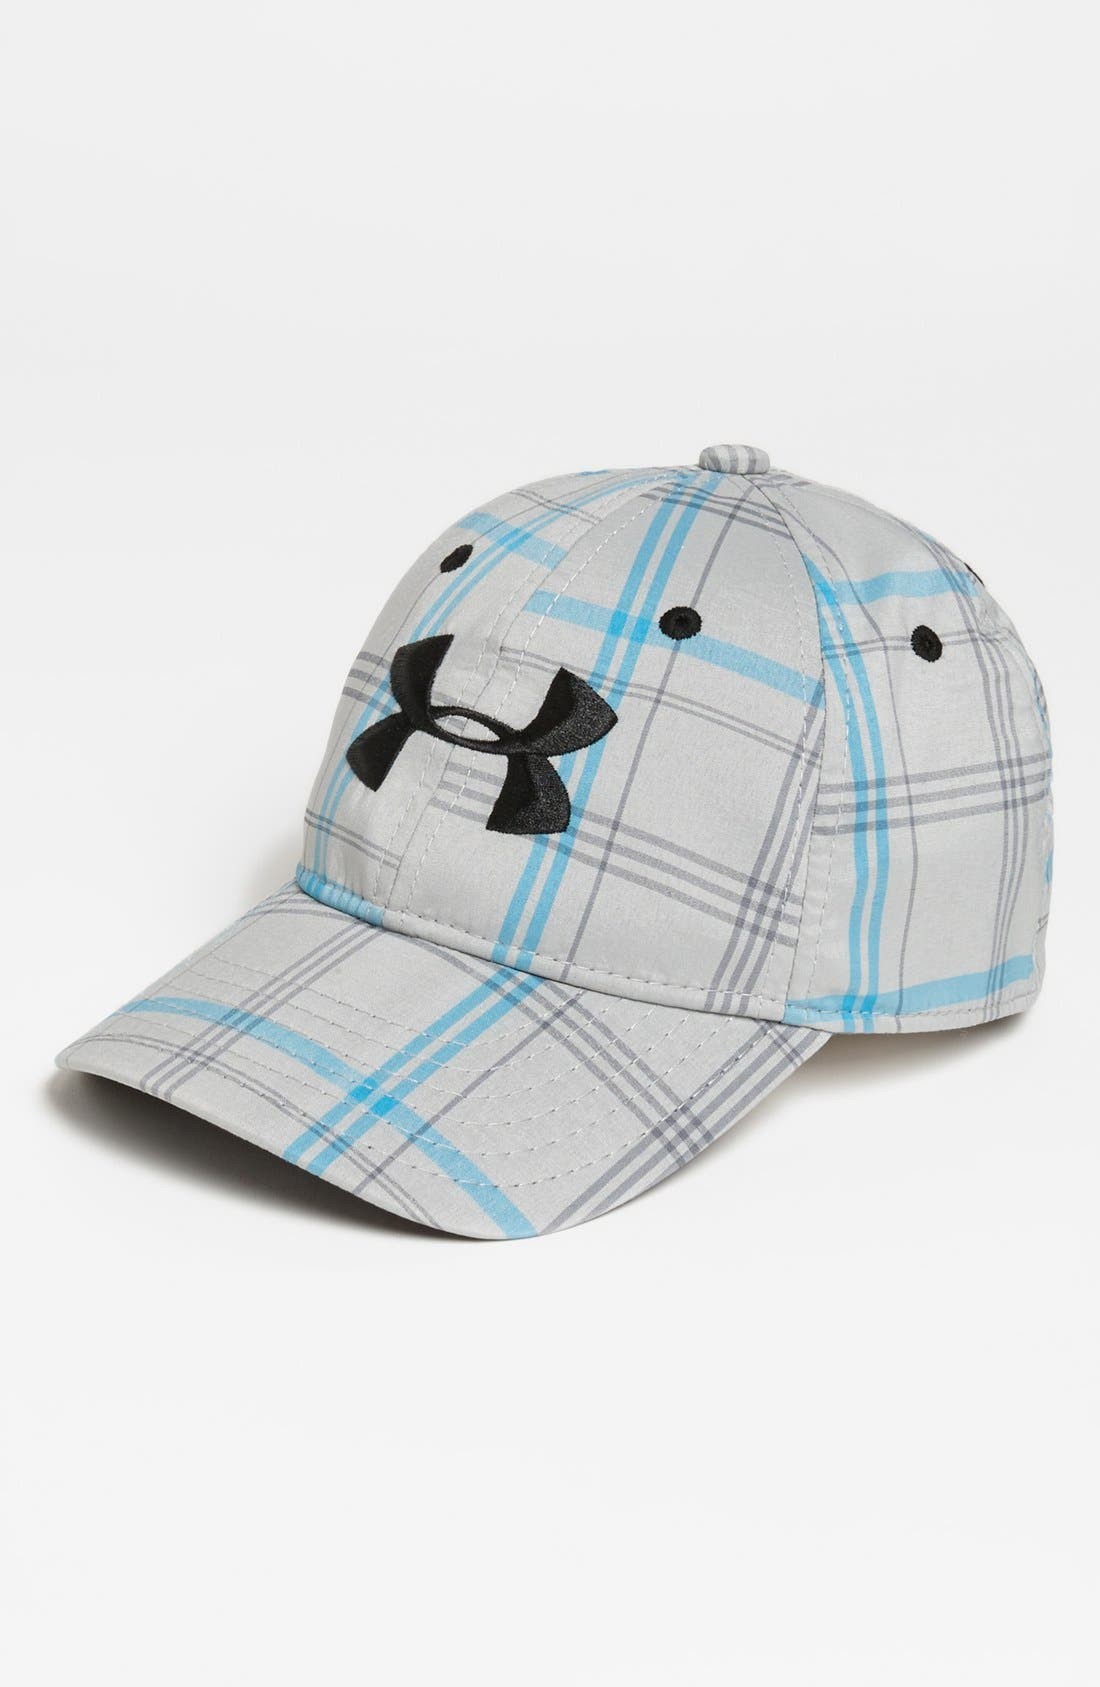 Main Image - Under Armour 'Forged' Fitted Baseball Cap (Boys)